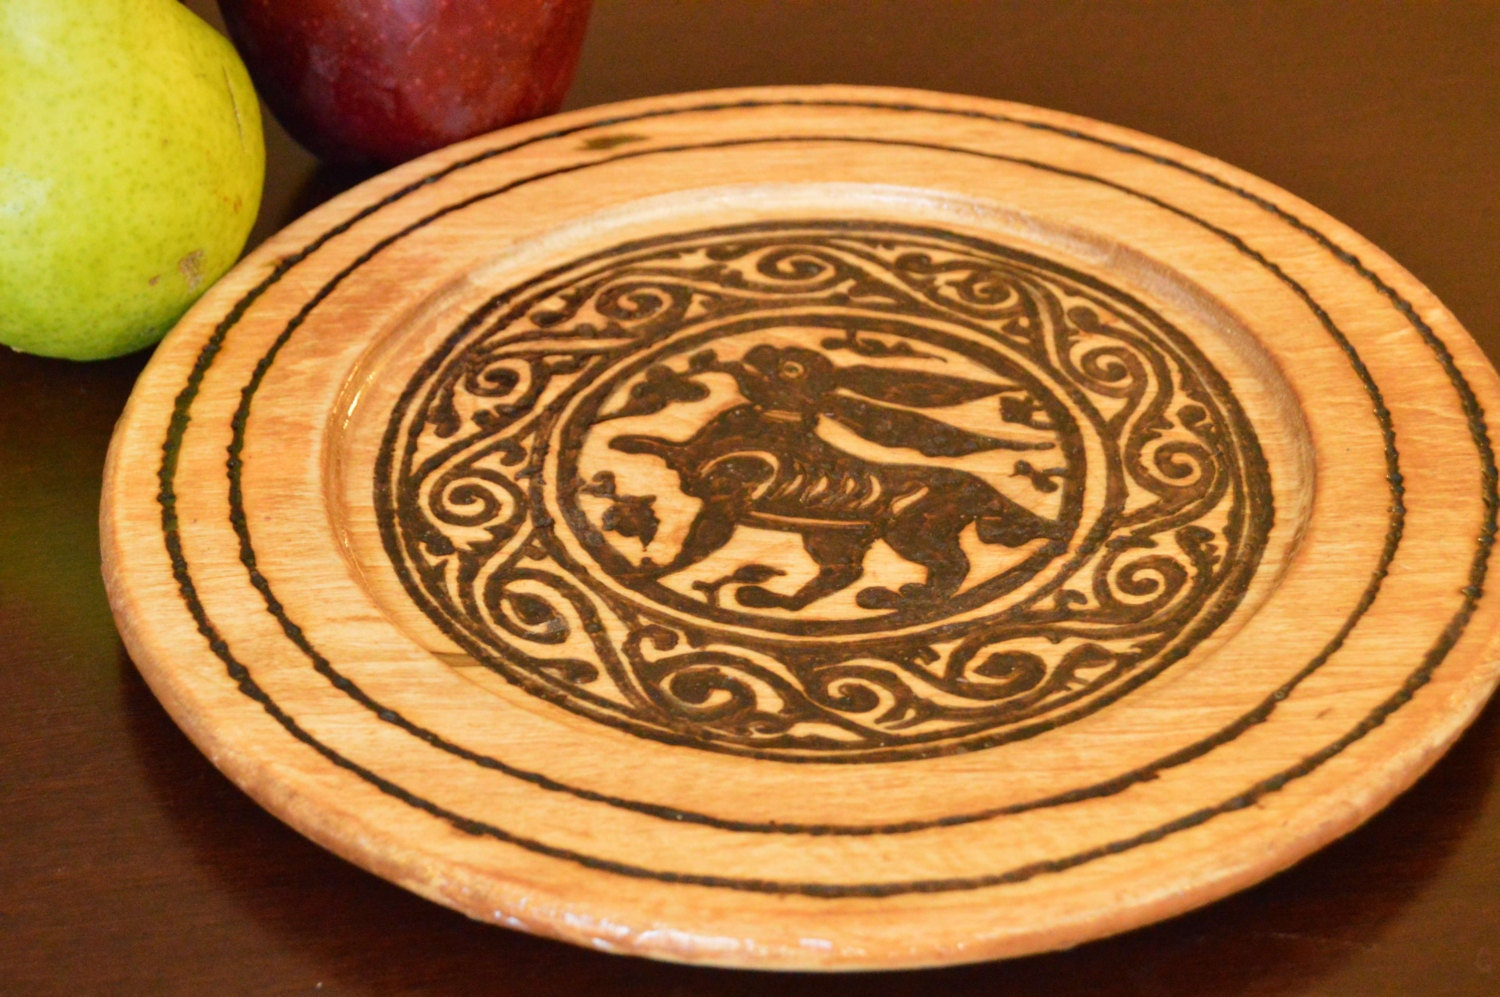 Wooden plates; decorative plates; placemat; wedding placemat; bunnies; rabbits; hares; medieval Islamic art; Fatimid art; woodburning; & Wooden plates; decorative plates; placemat; wedding placemat ...